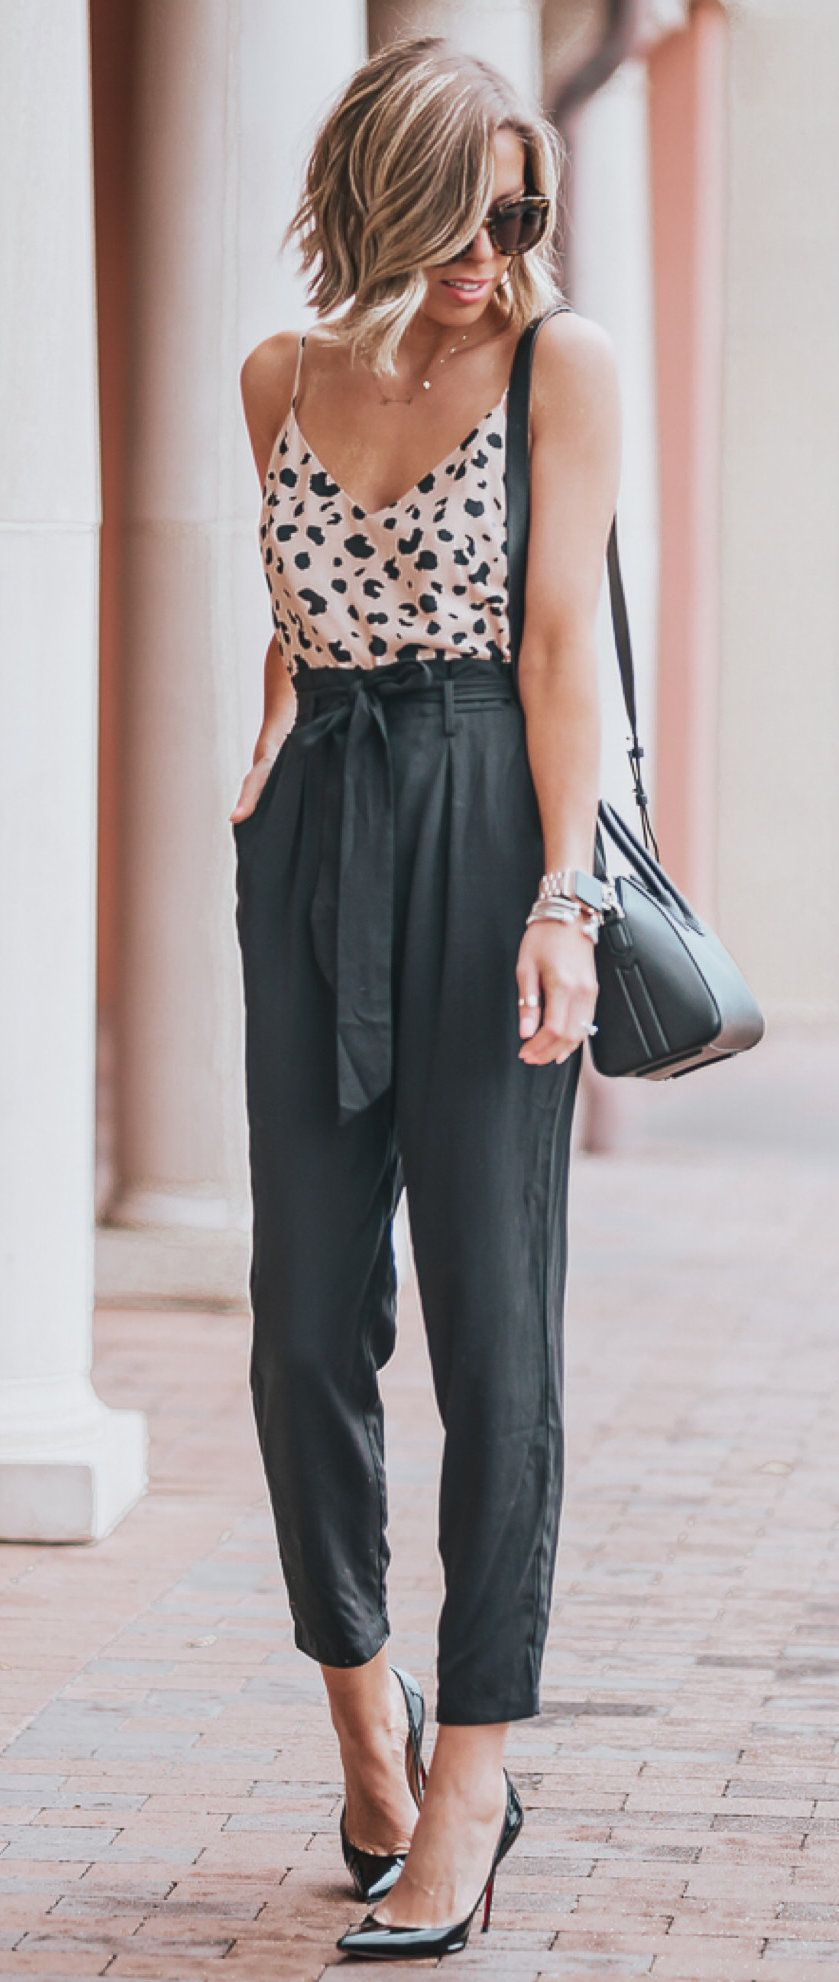 brown and black spaghetti-strap tank top and black pants outfit #spring #outfits